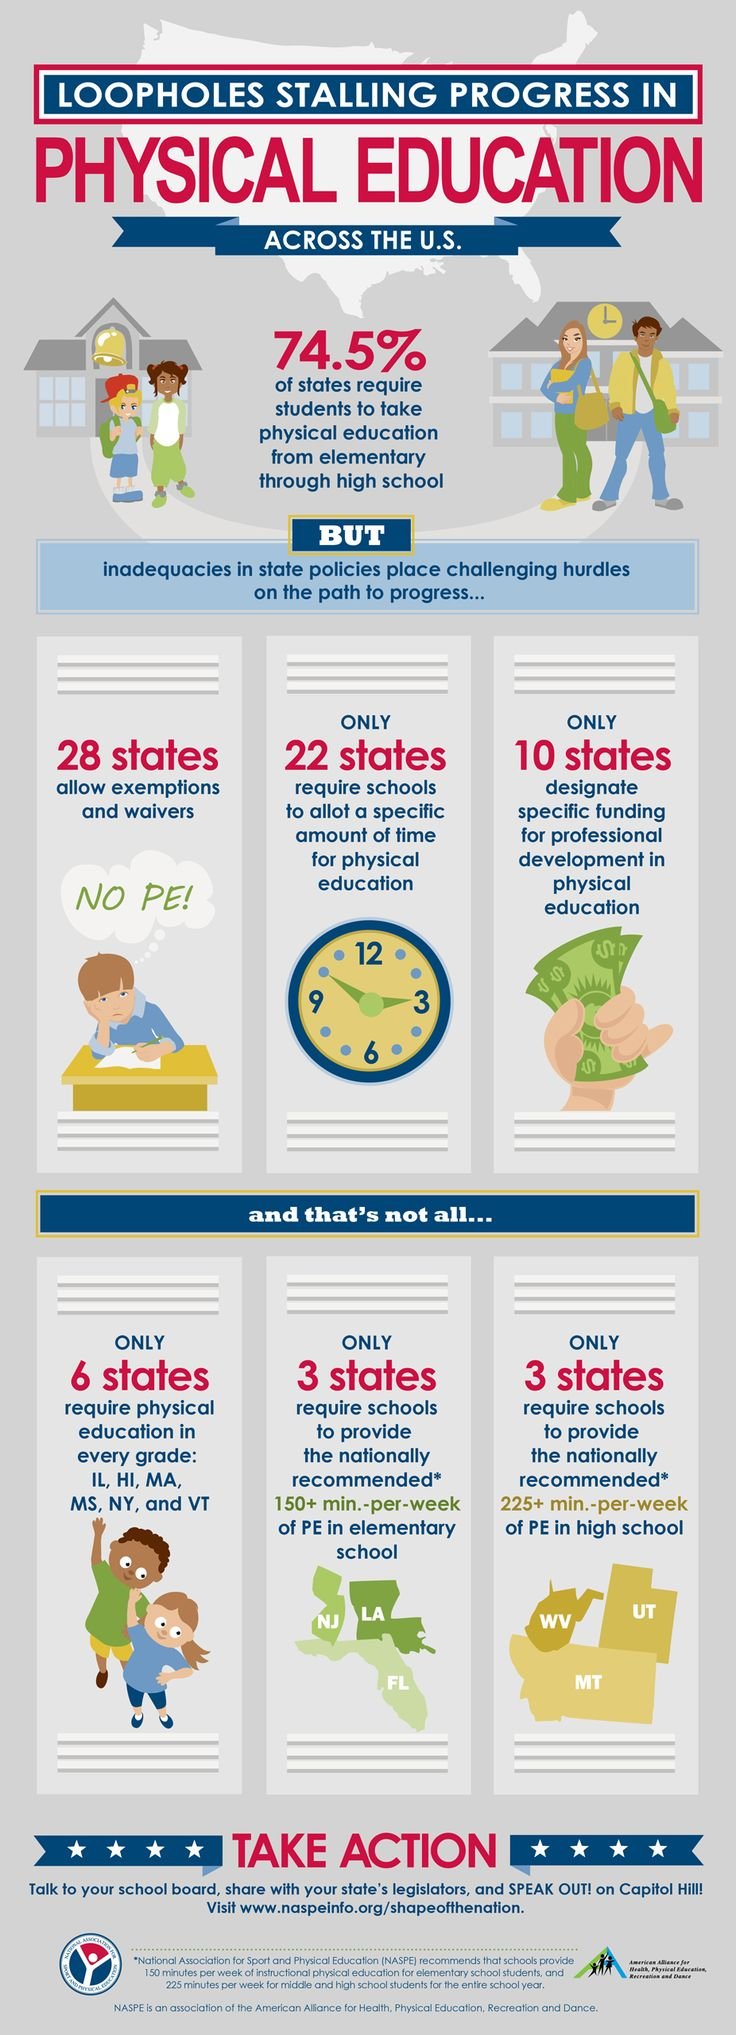 best images about education teaching technology physical education infographic only 6 states require pe k 12 what